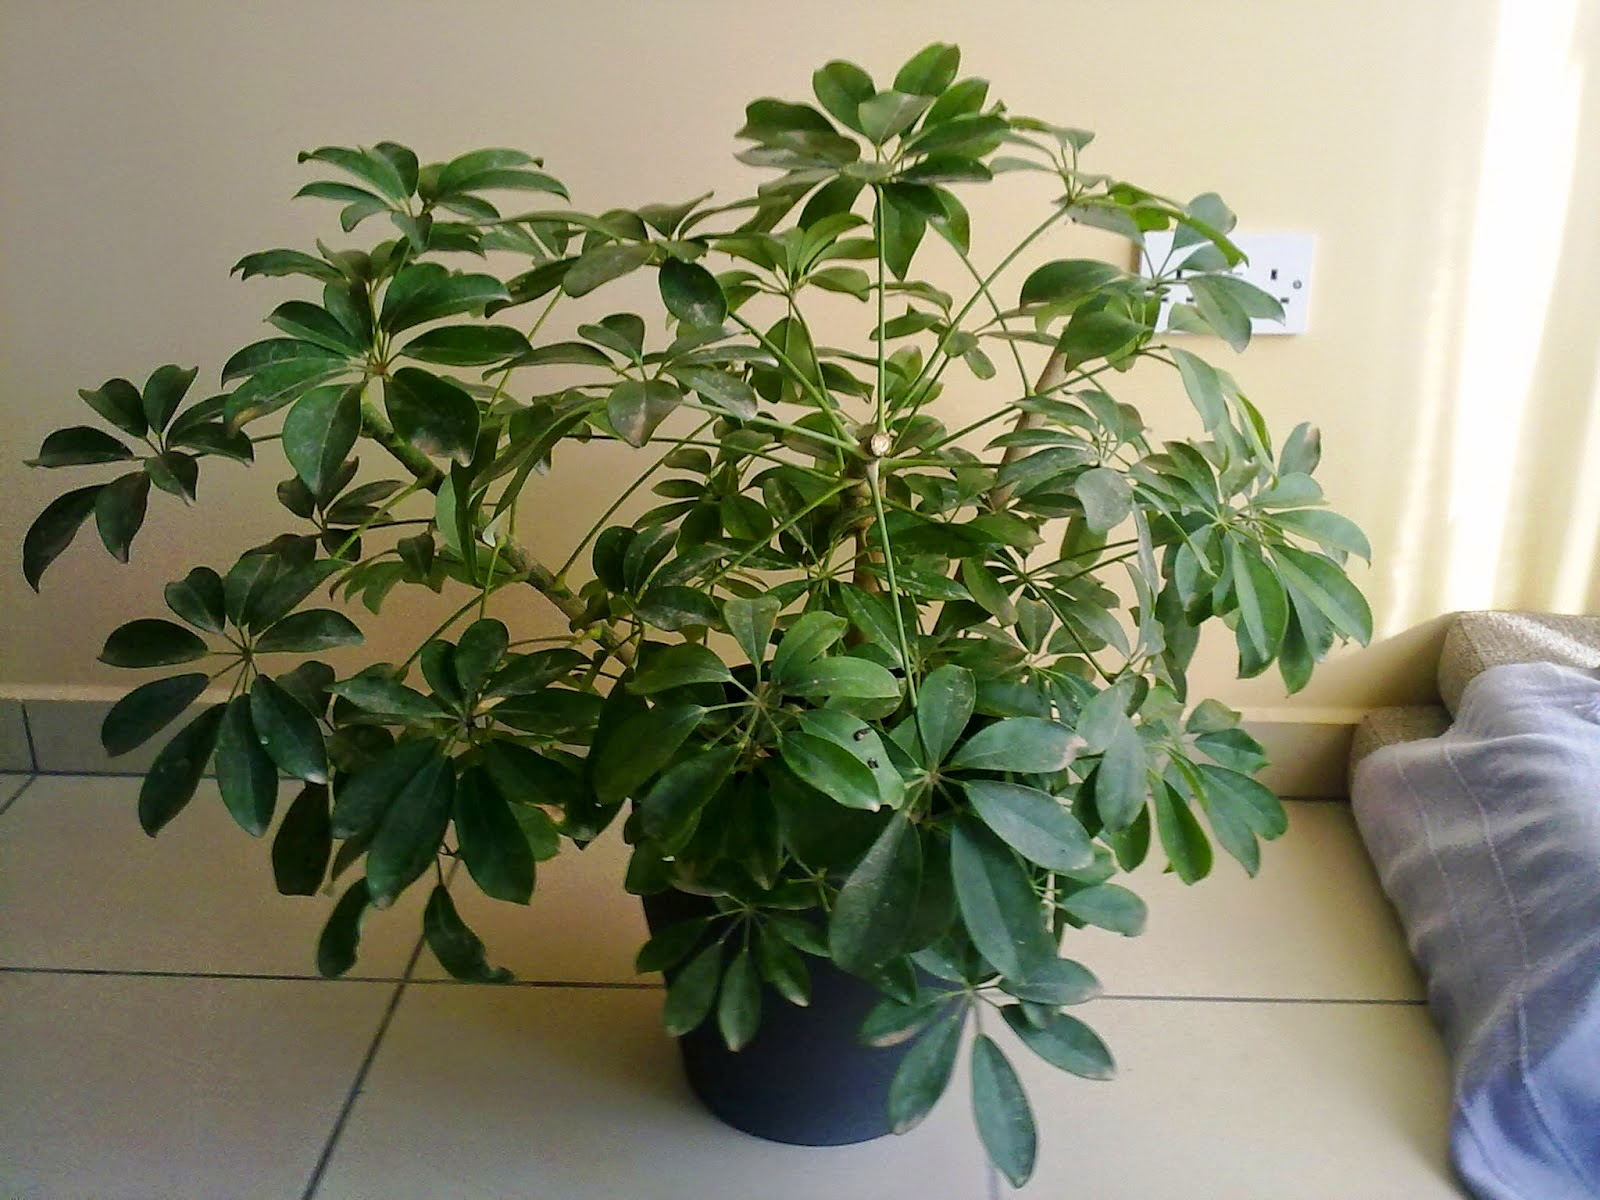 How To Plant Indoor Plants The Umbrella Plant Who Gets Homesick Green Patches